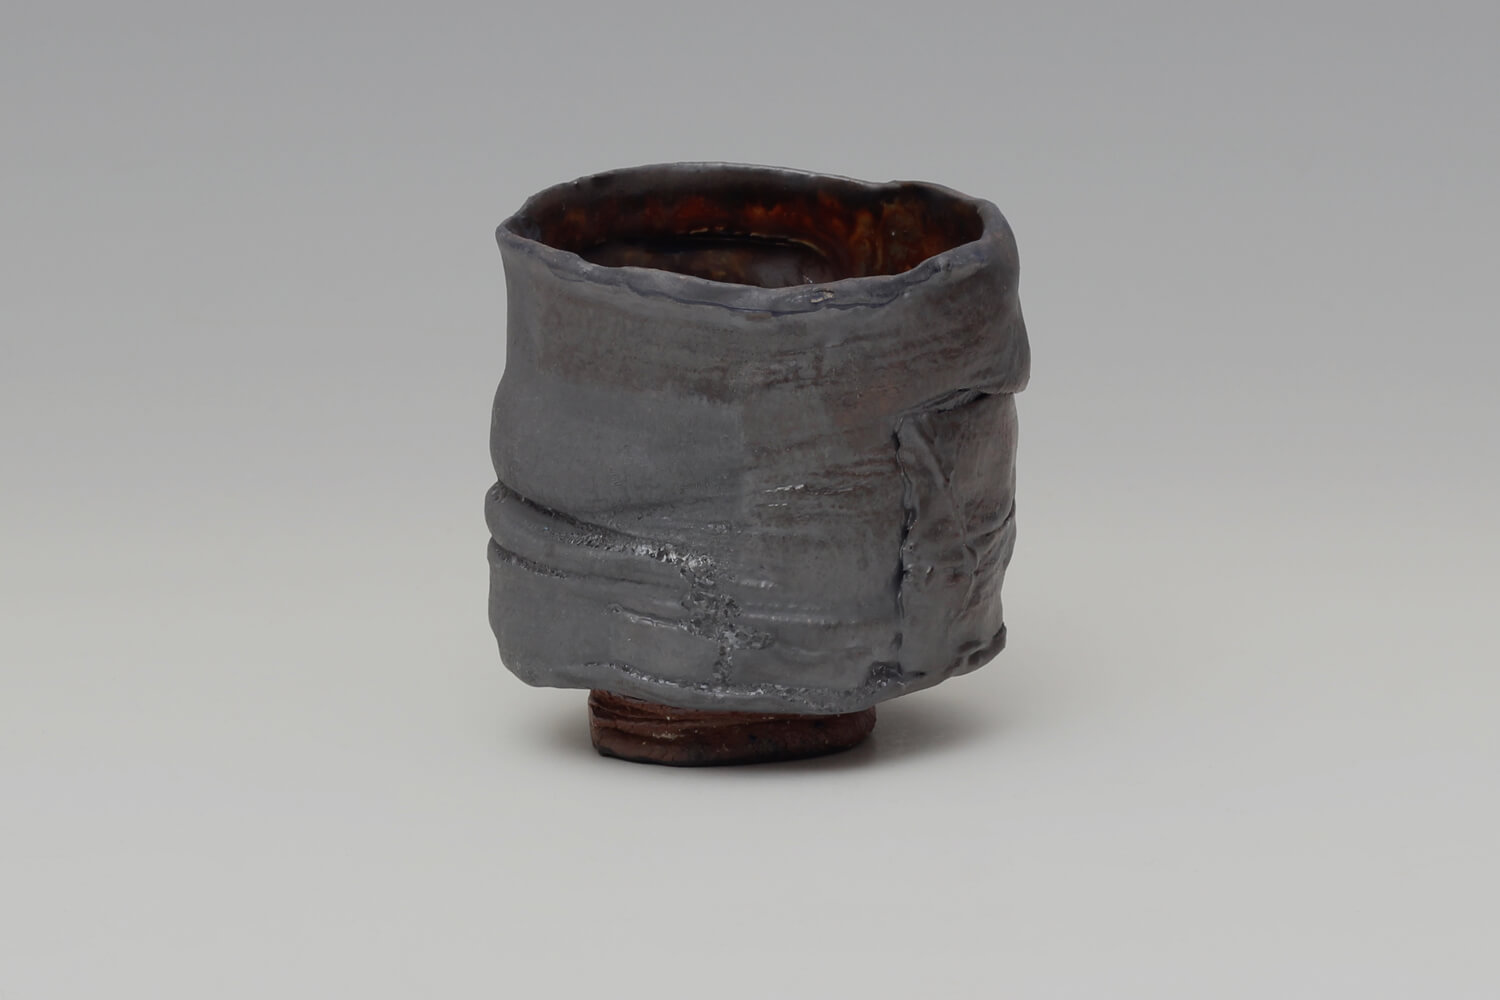 Robert Cooper Ceramic Tea Bowl 111